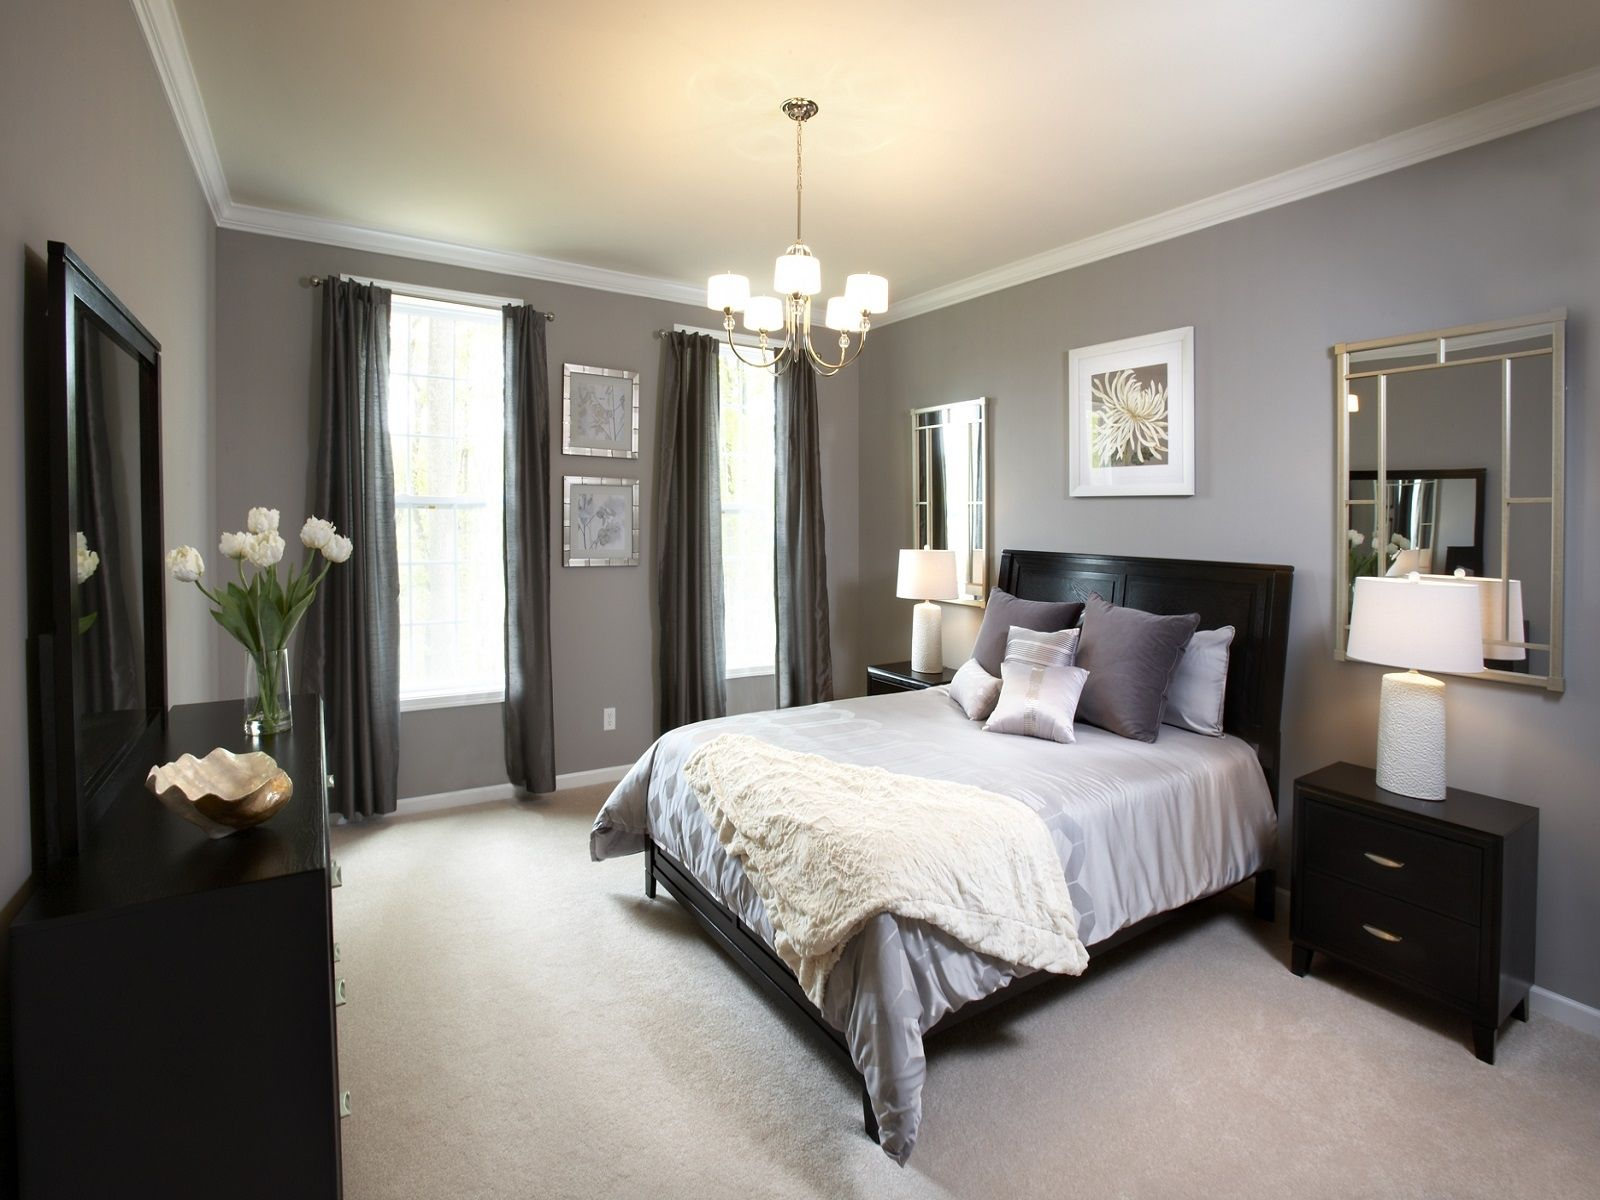 Bedroom wall decorating ideas picture frames - Brilliant Decorating Bedroom Ideas With Black Bed And Dark Dresser Near Grey Painted Wall